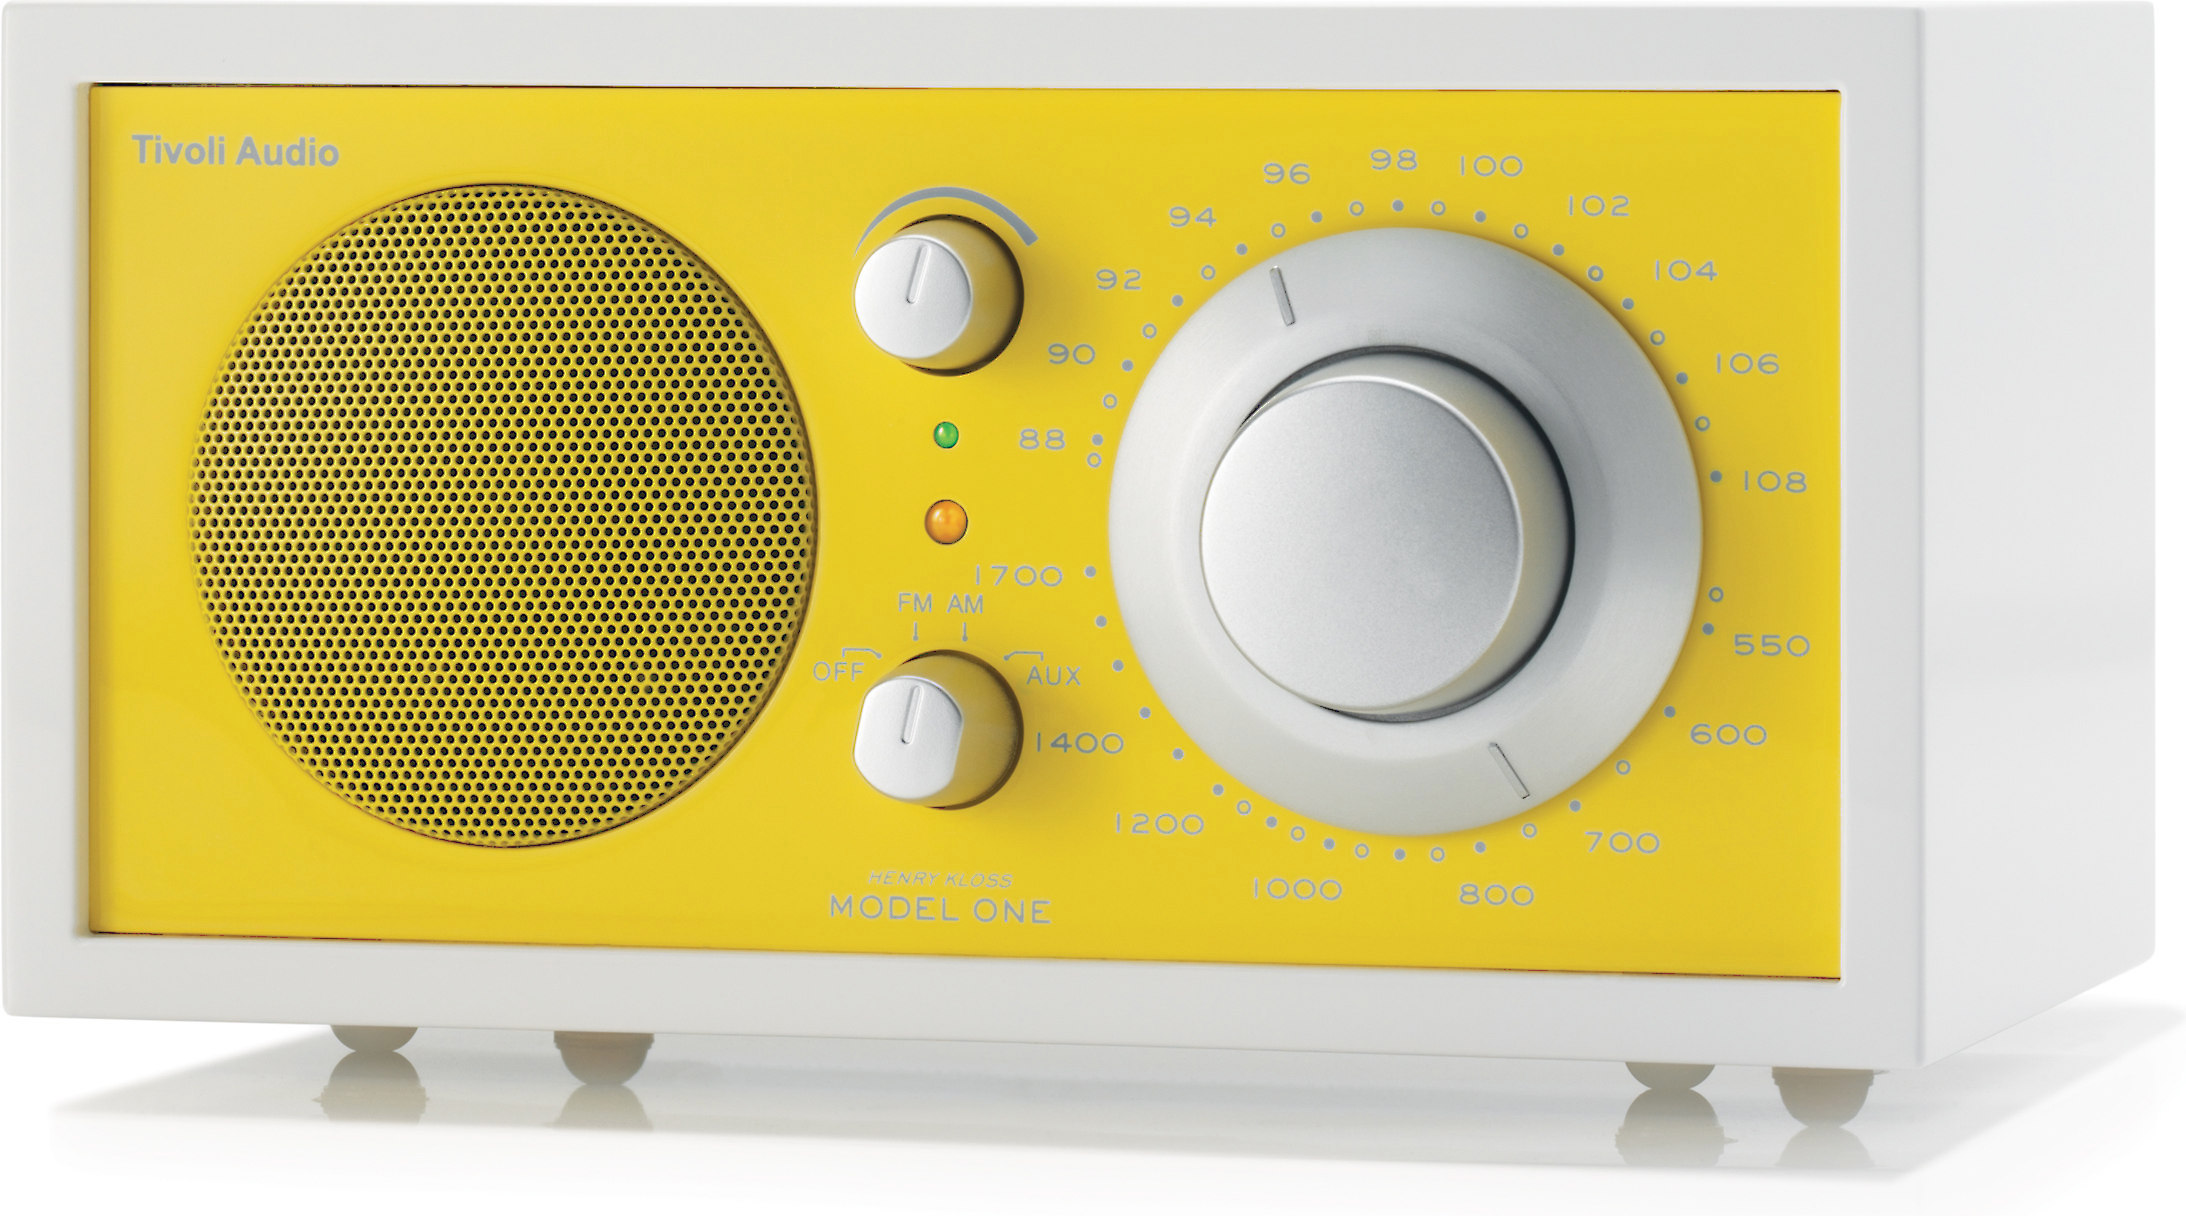 Tivoli Audio Yellow Tivoli Audio Frost White Model One Frost White And Yellow